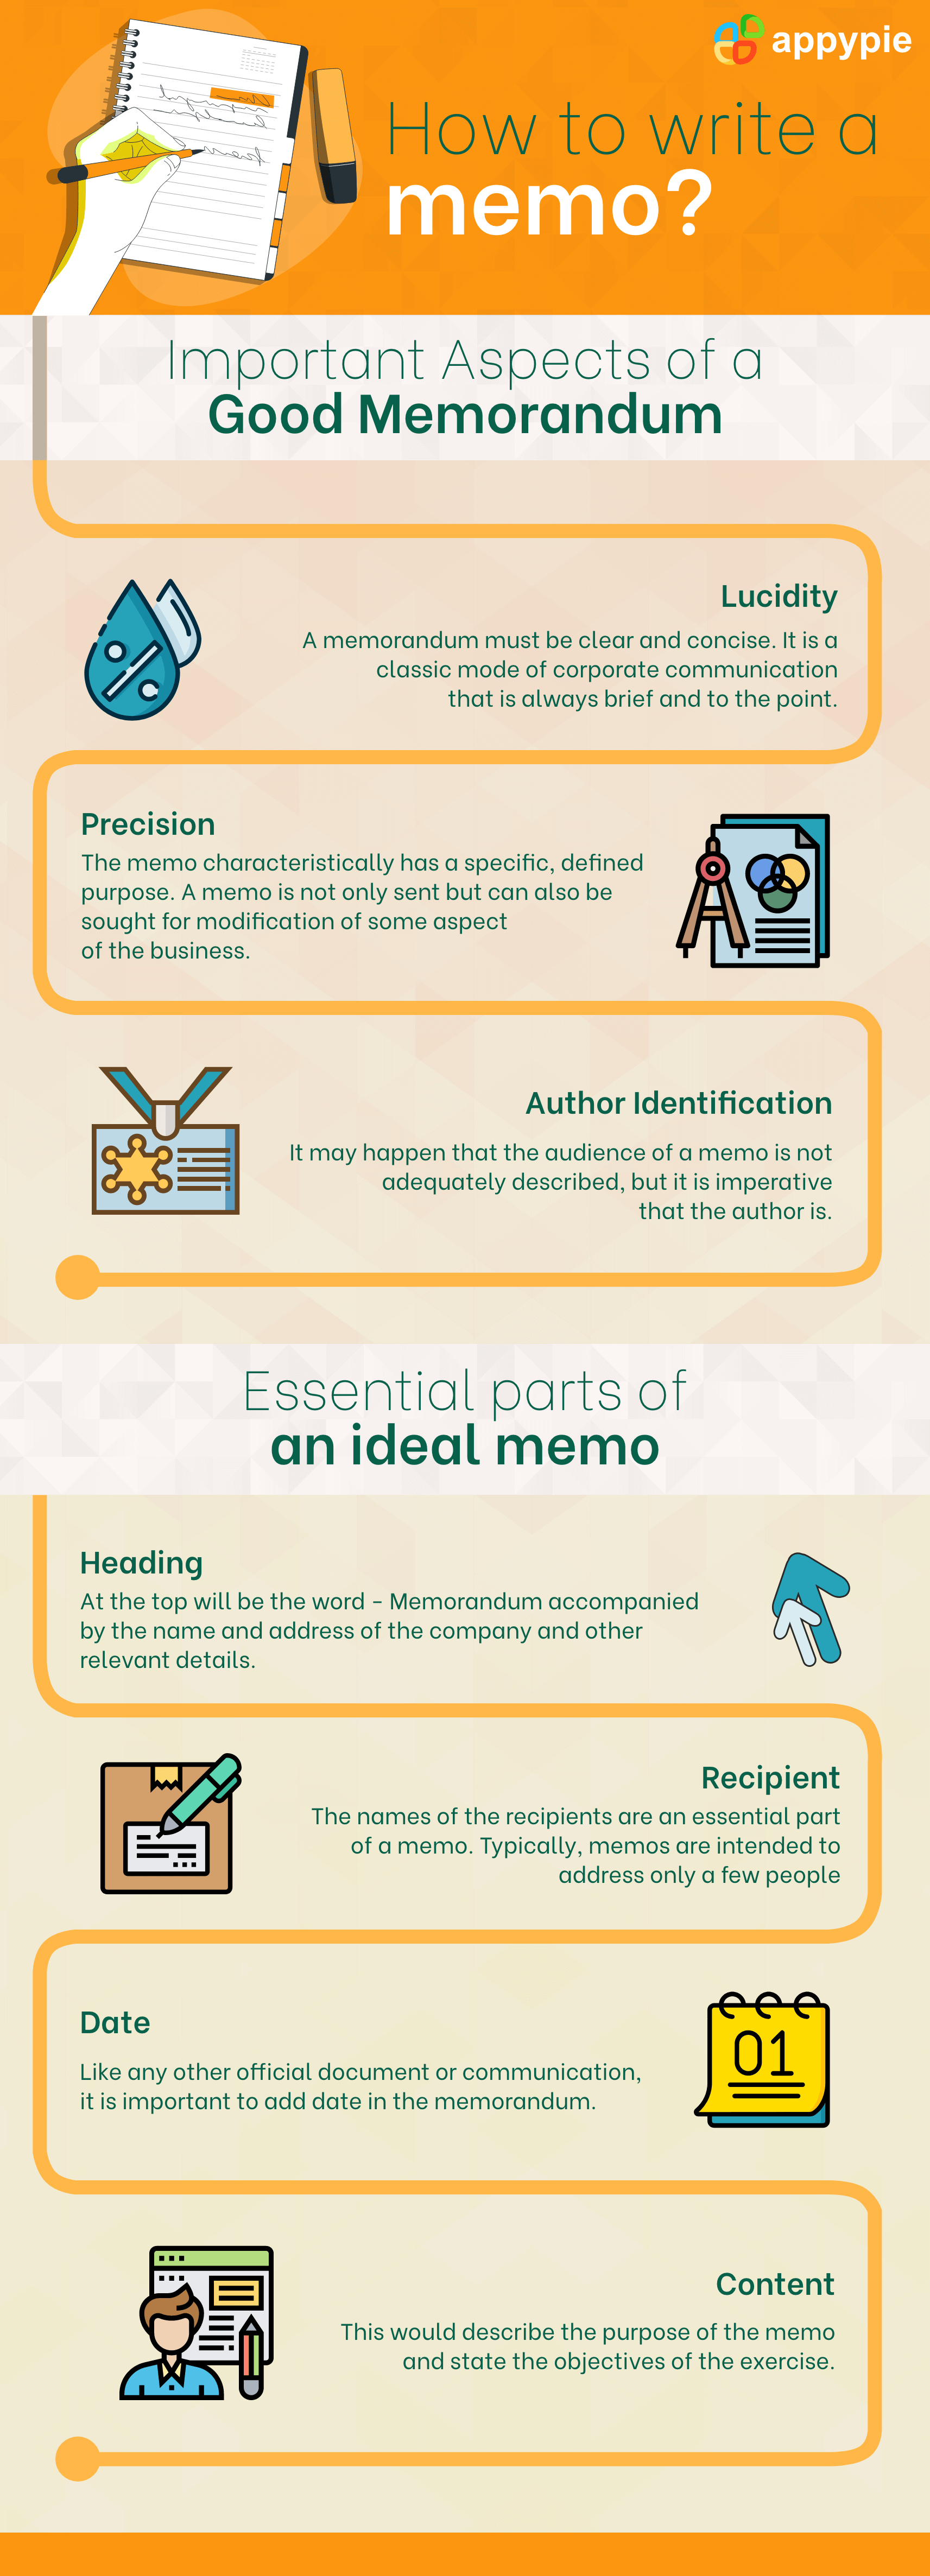 Appy Pie - How To Write A Memo